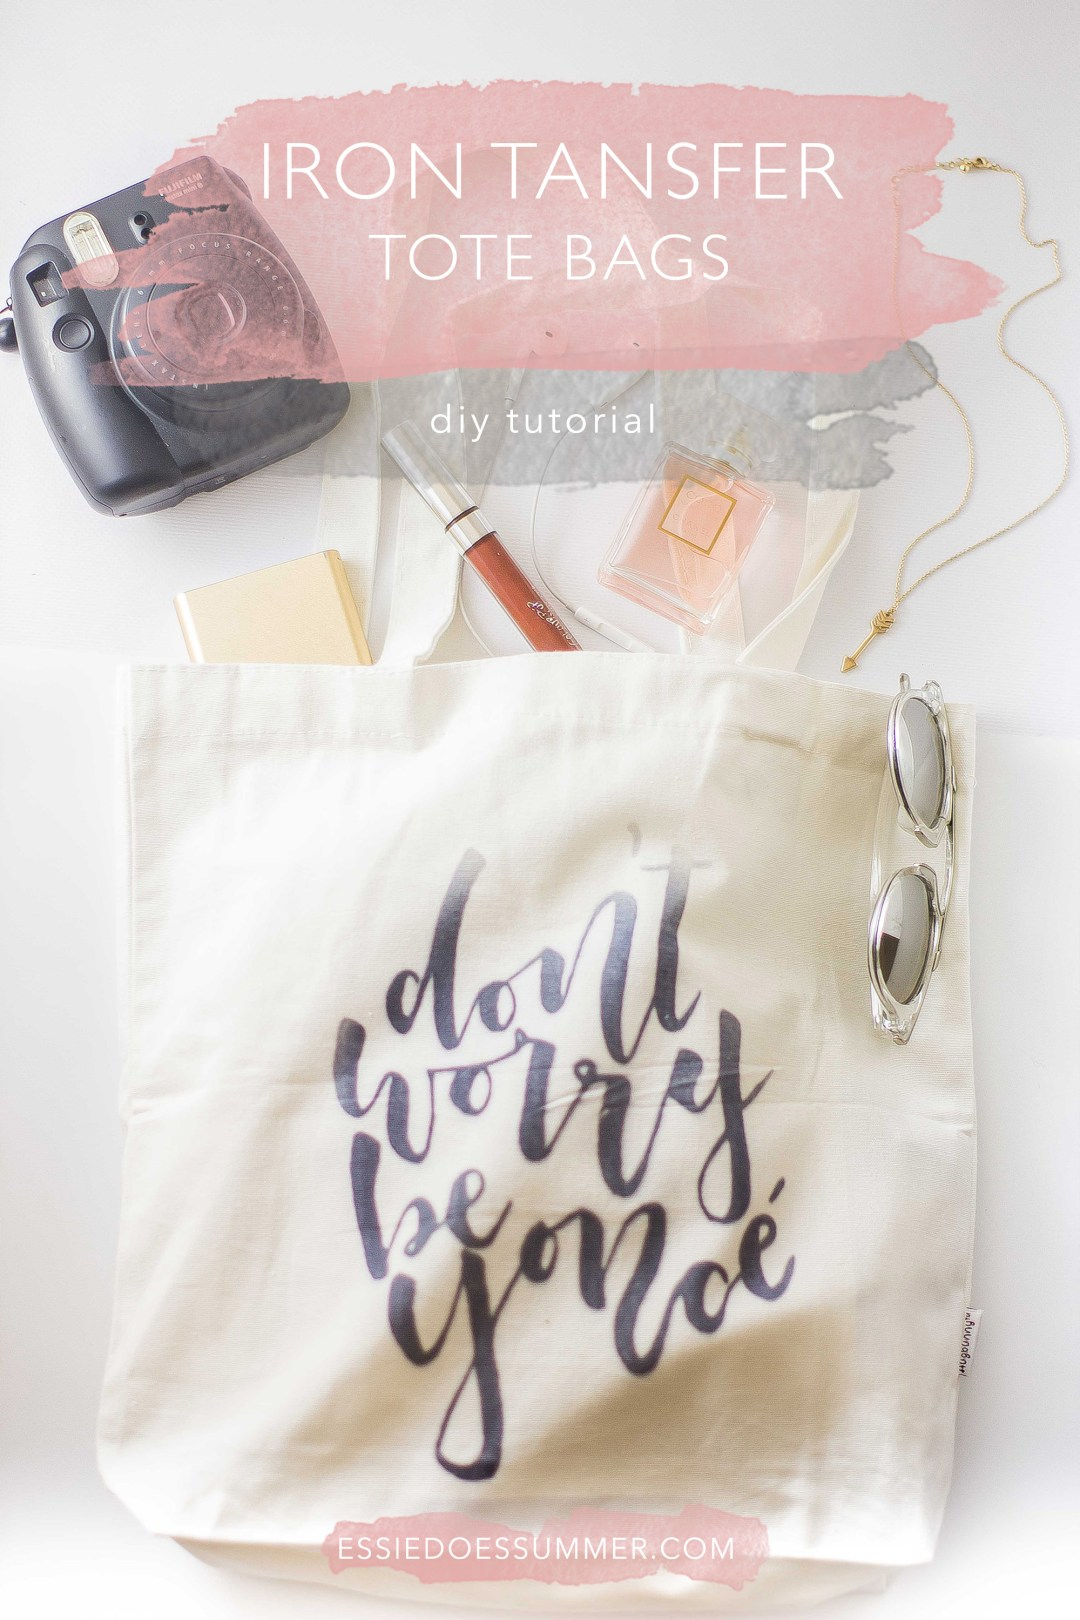 Easy-To-Follow directions to make these über cool tote bags with Beyoncé lyrics. Click through for the full tutorial || Essie Does Summer